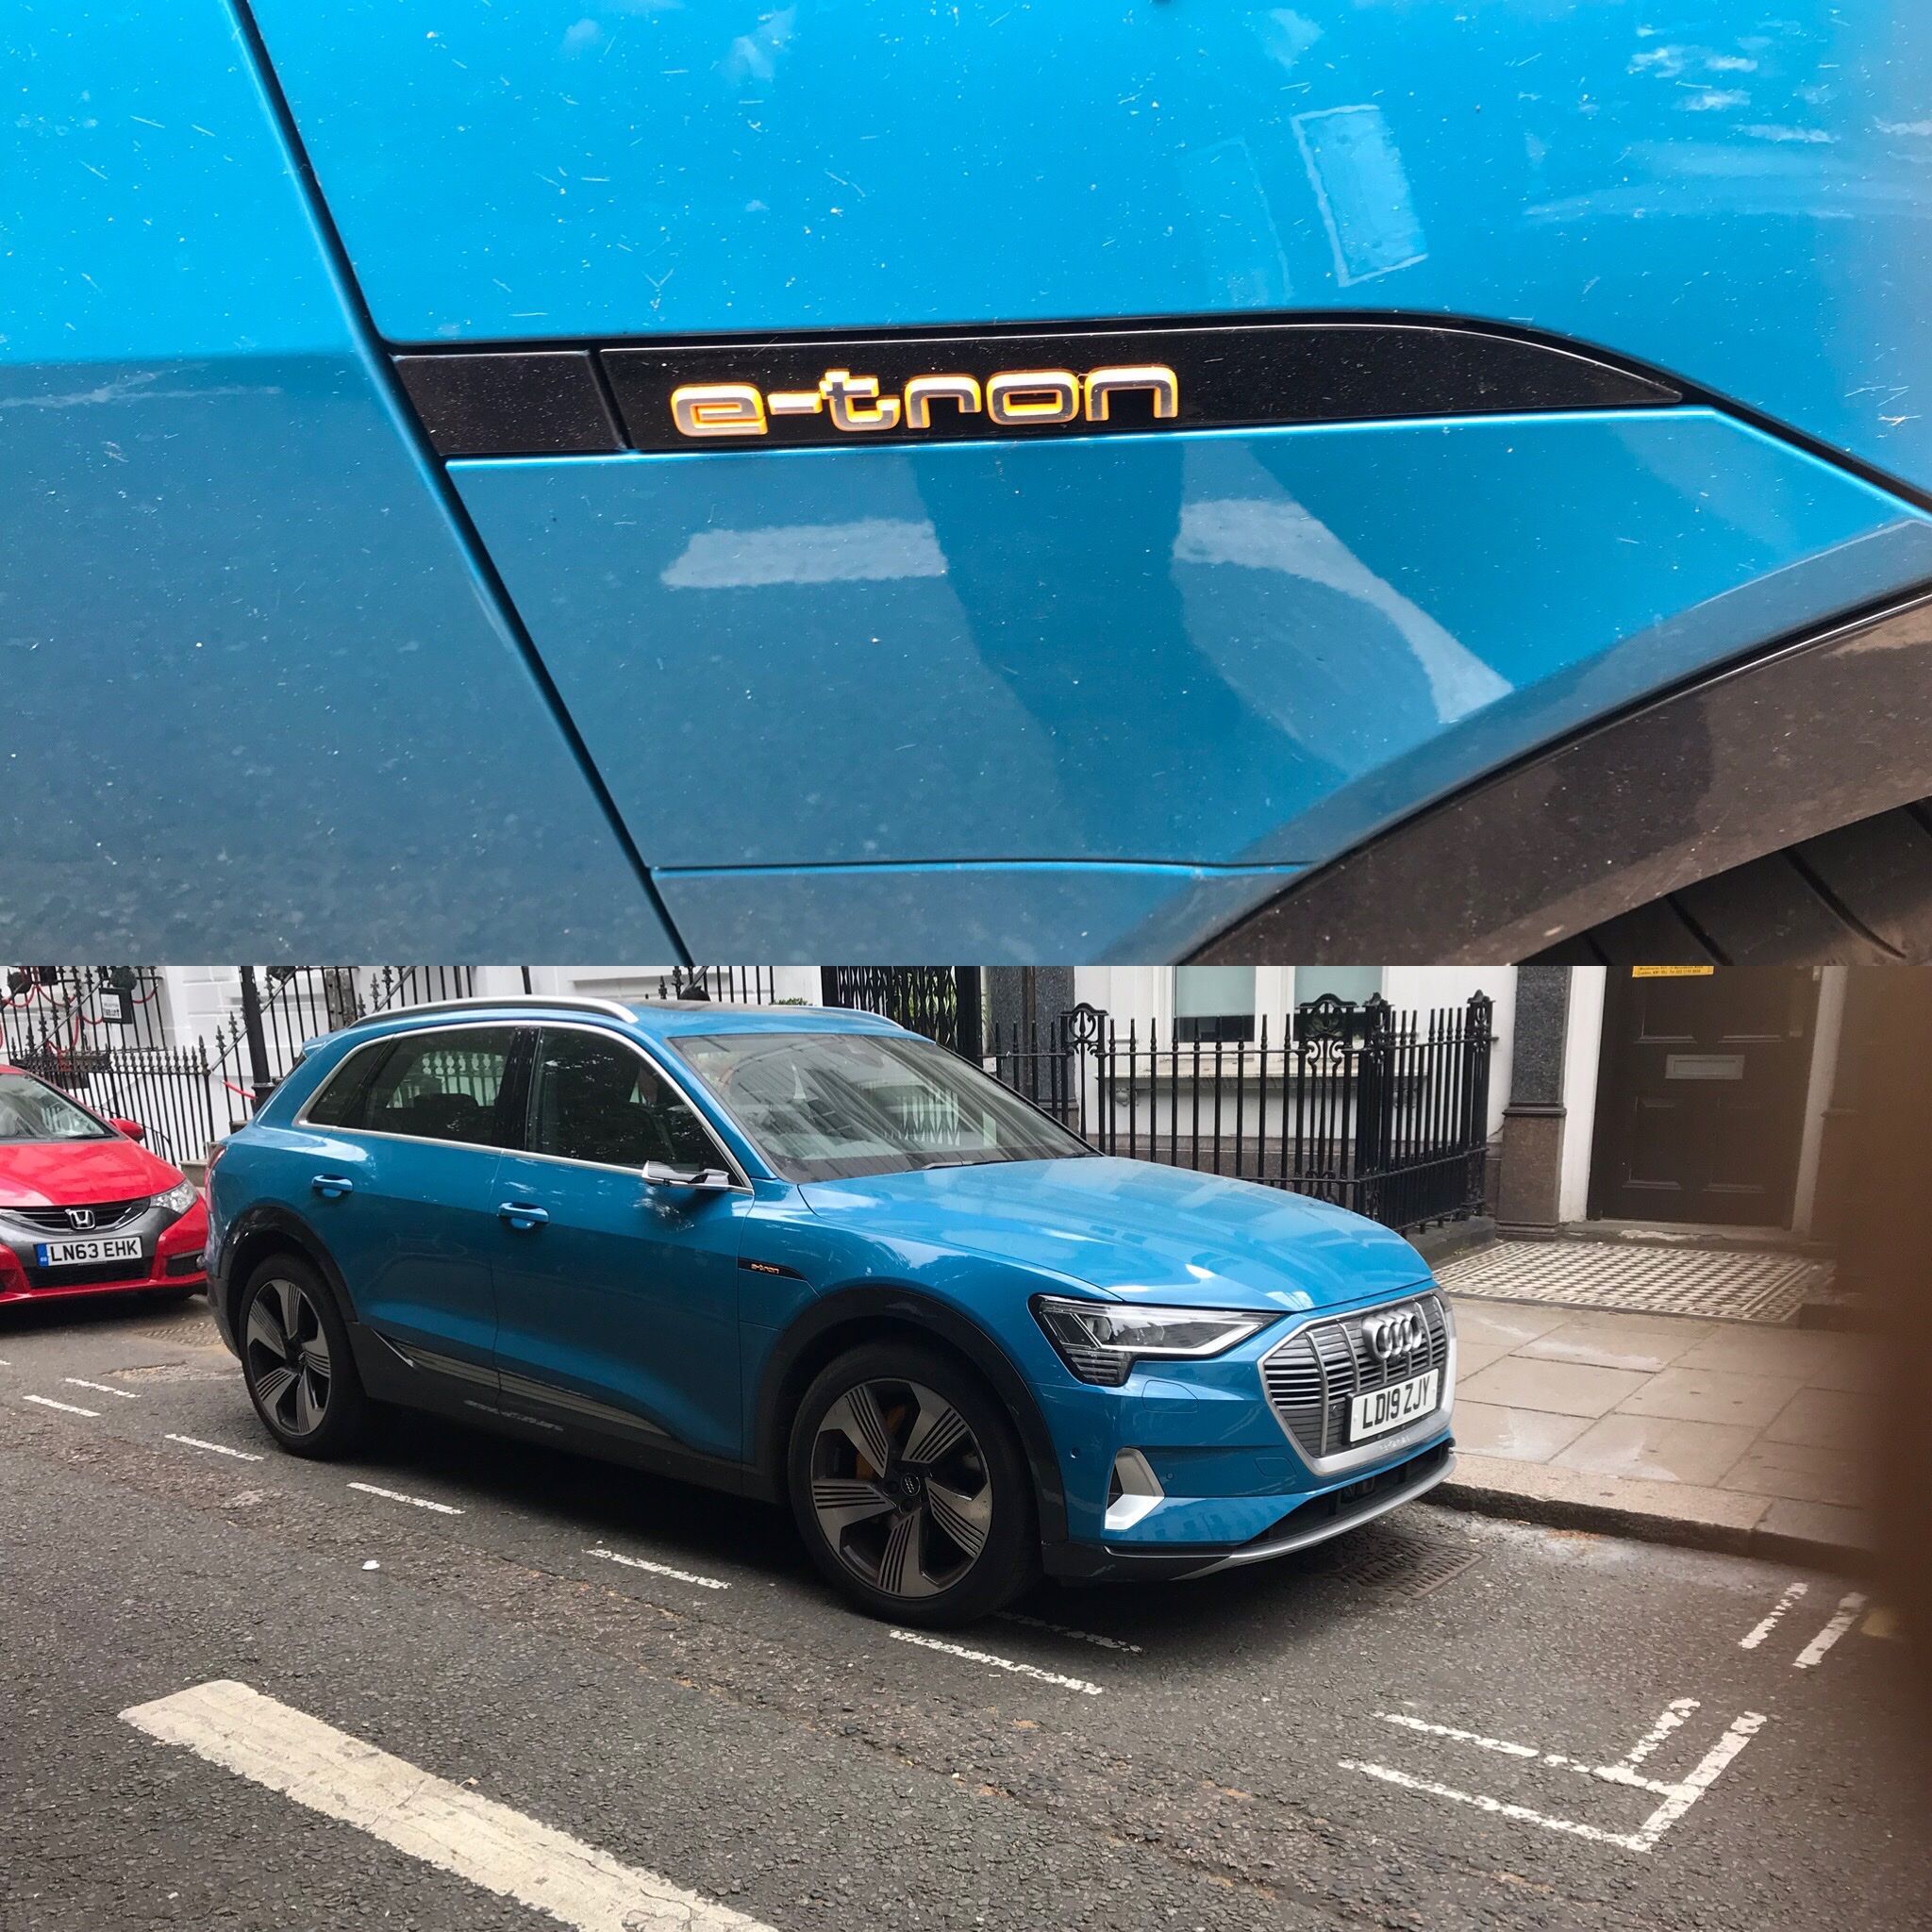 Audi e-tron and spending patterns